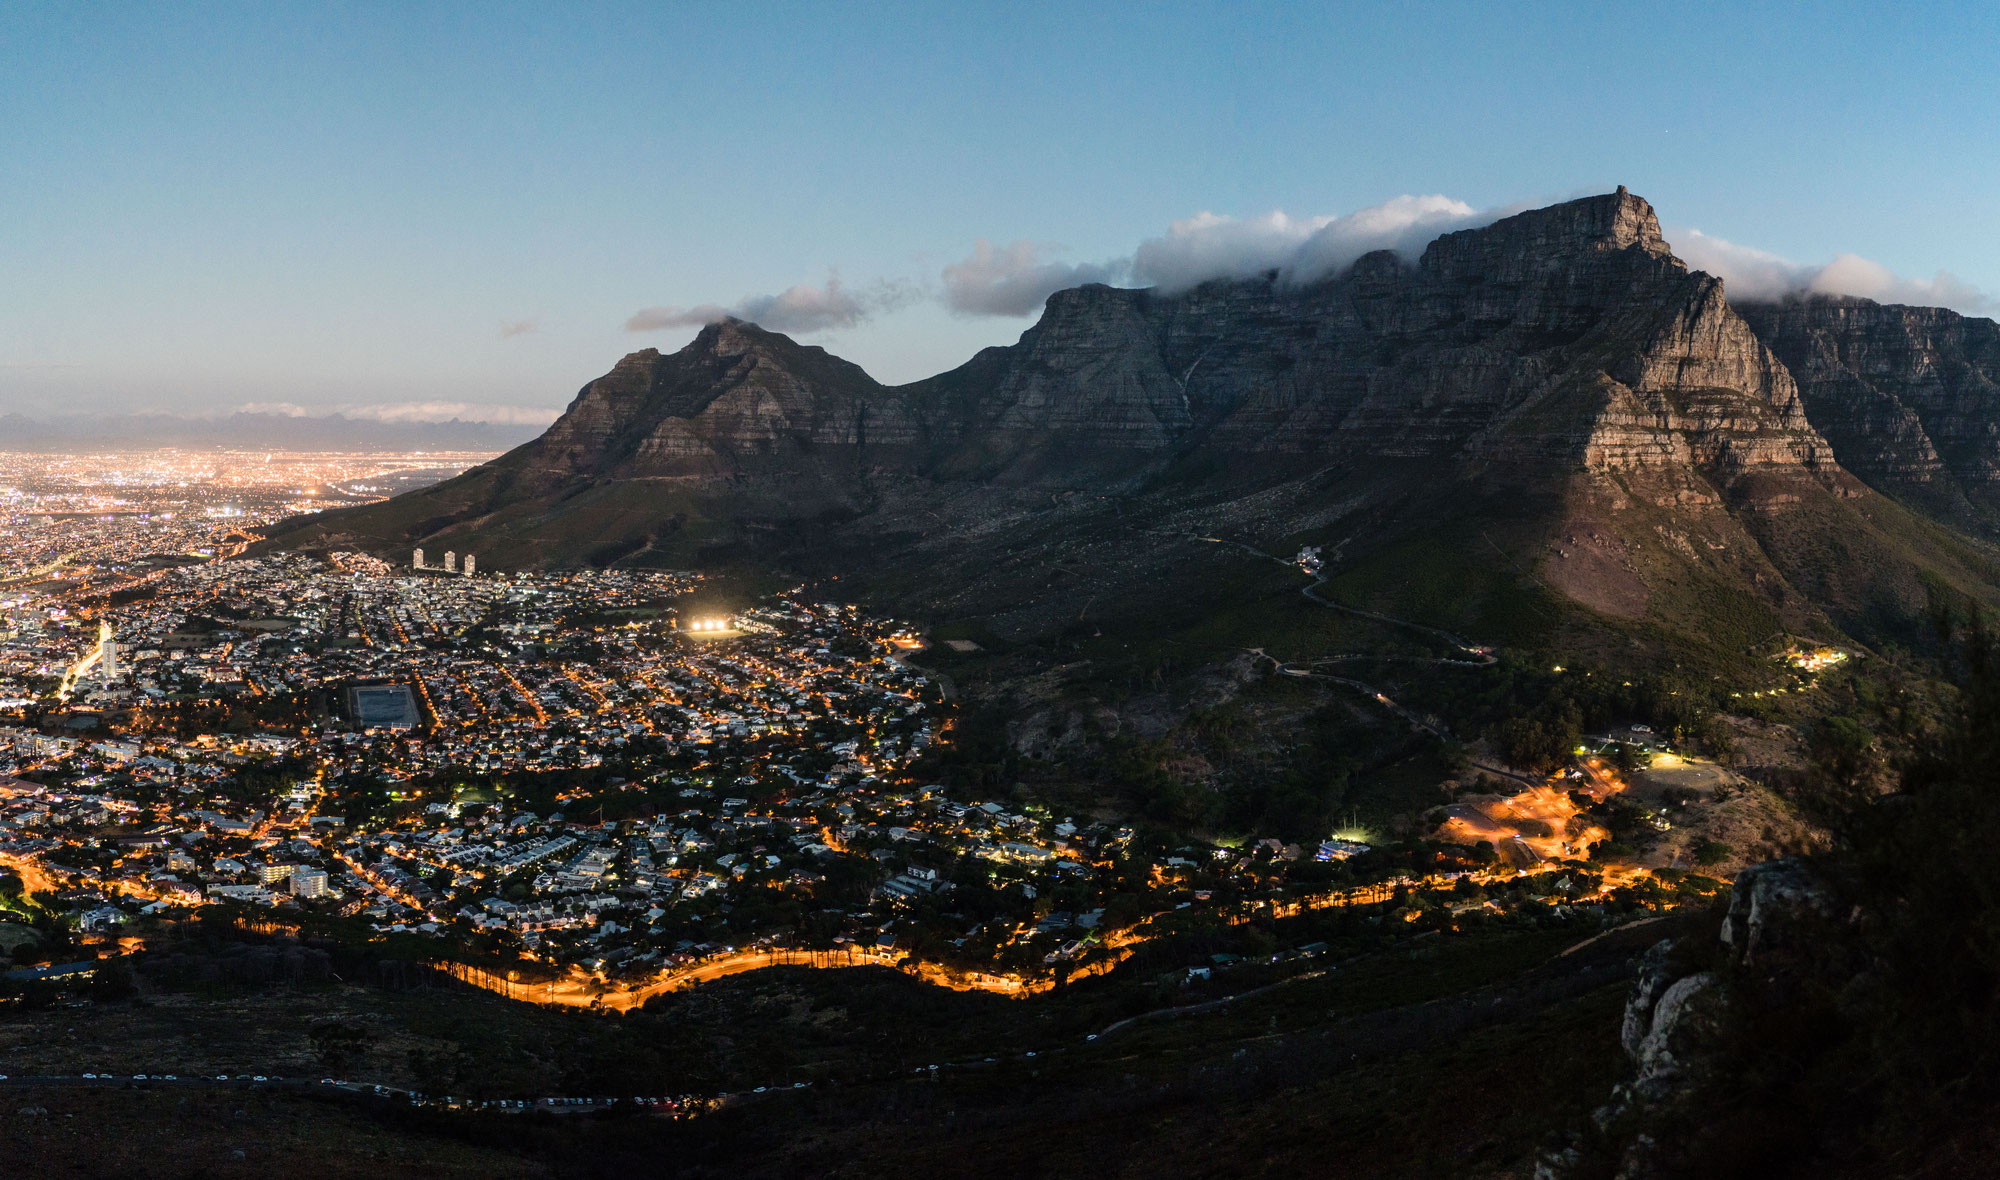 Cape Town's iconic Table Mountain